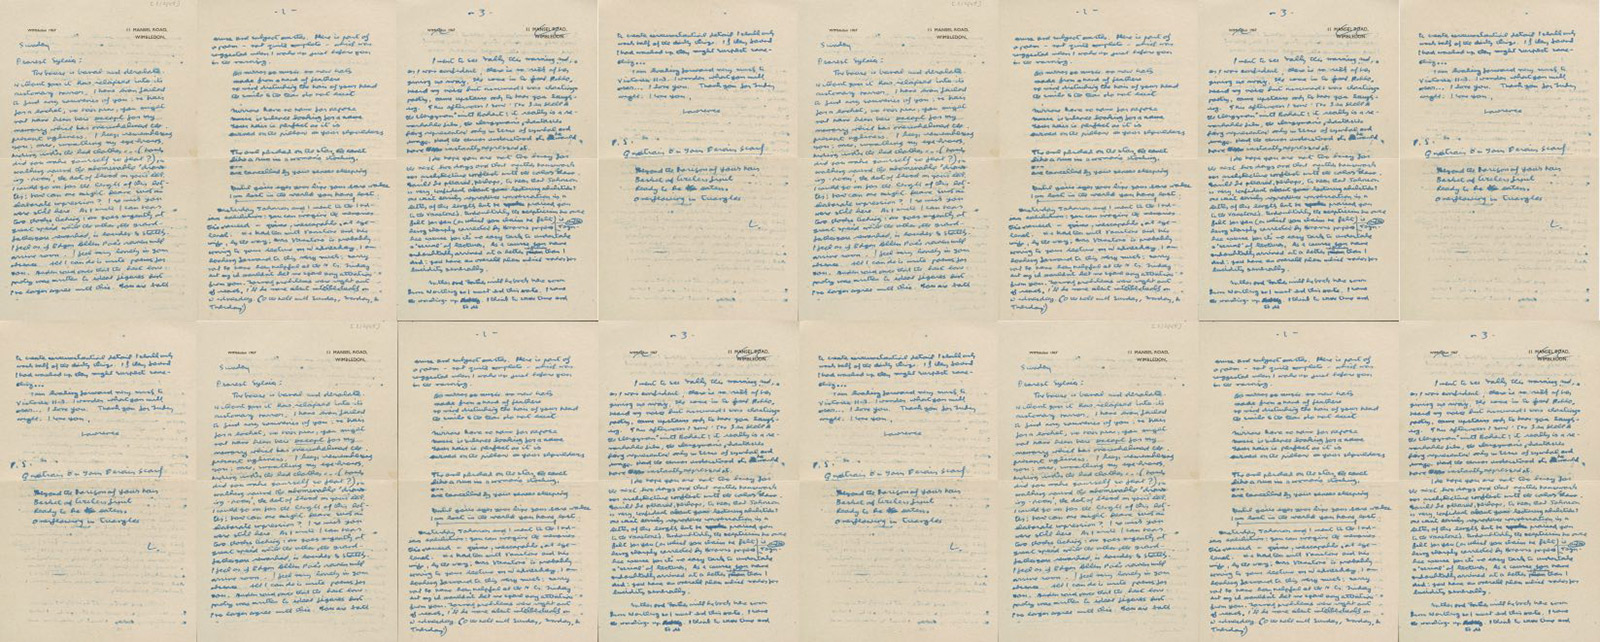 Composite view of 16 pages of yellowed letters, dense with blue handwriting